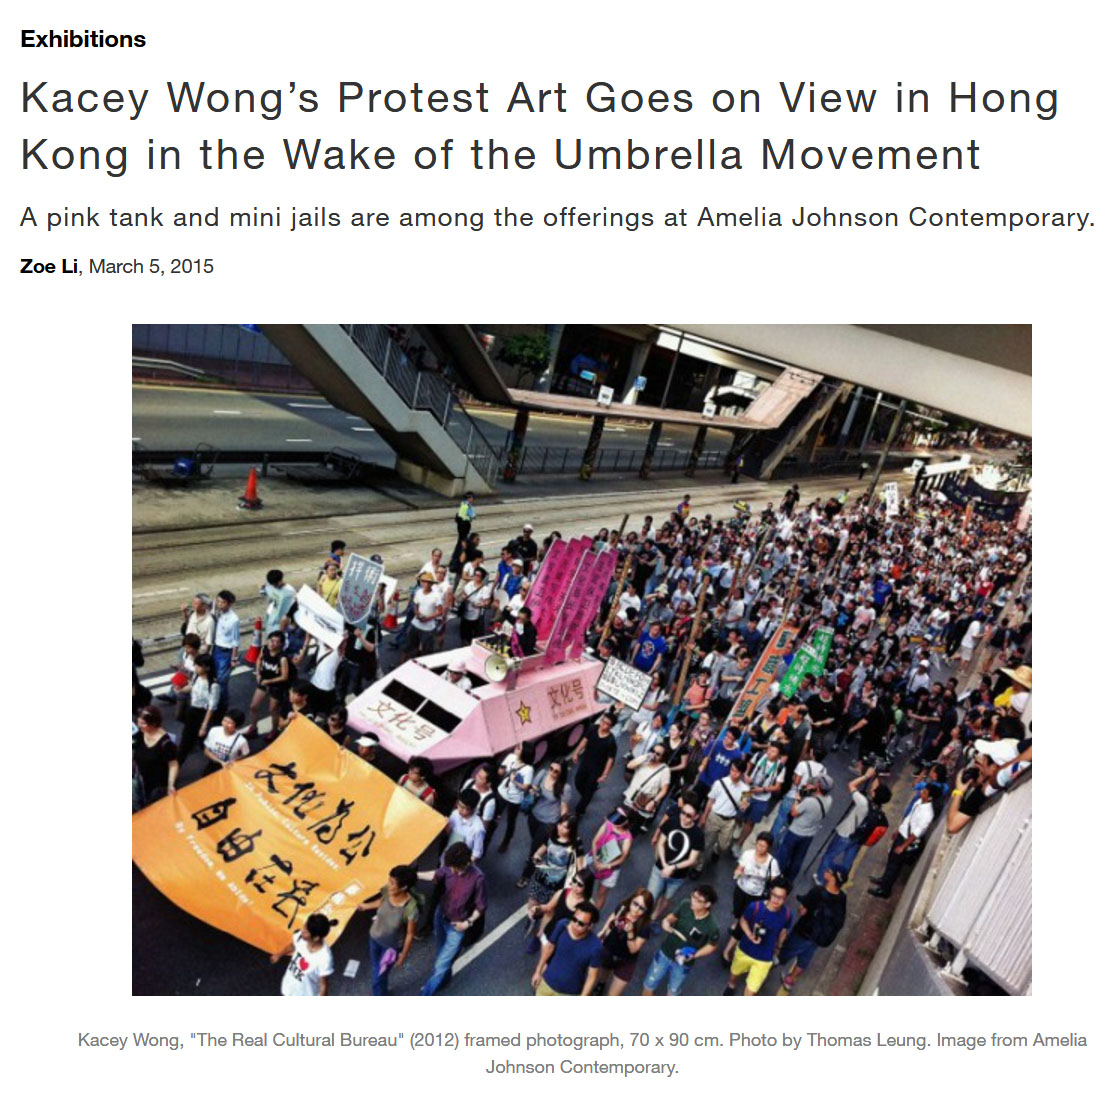 March/5/2015 Artnet News  Kacey Wong's Protest Art Goes on View in Hong Kong in the Wake of the Umbrella Movement